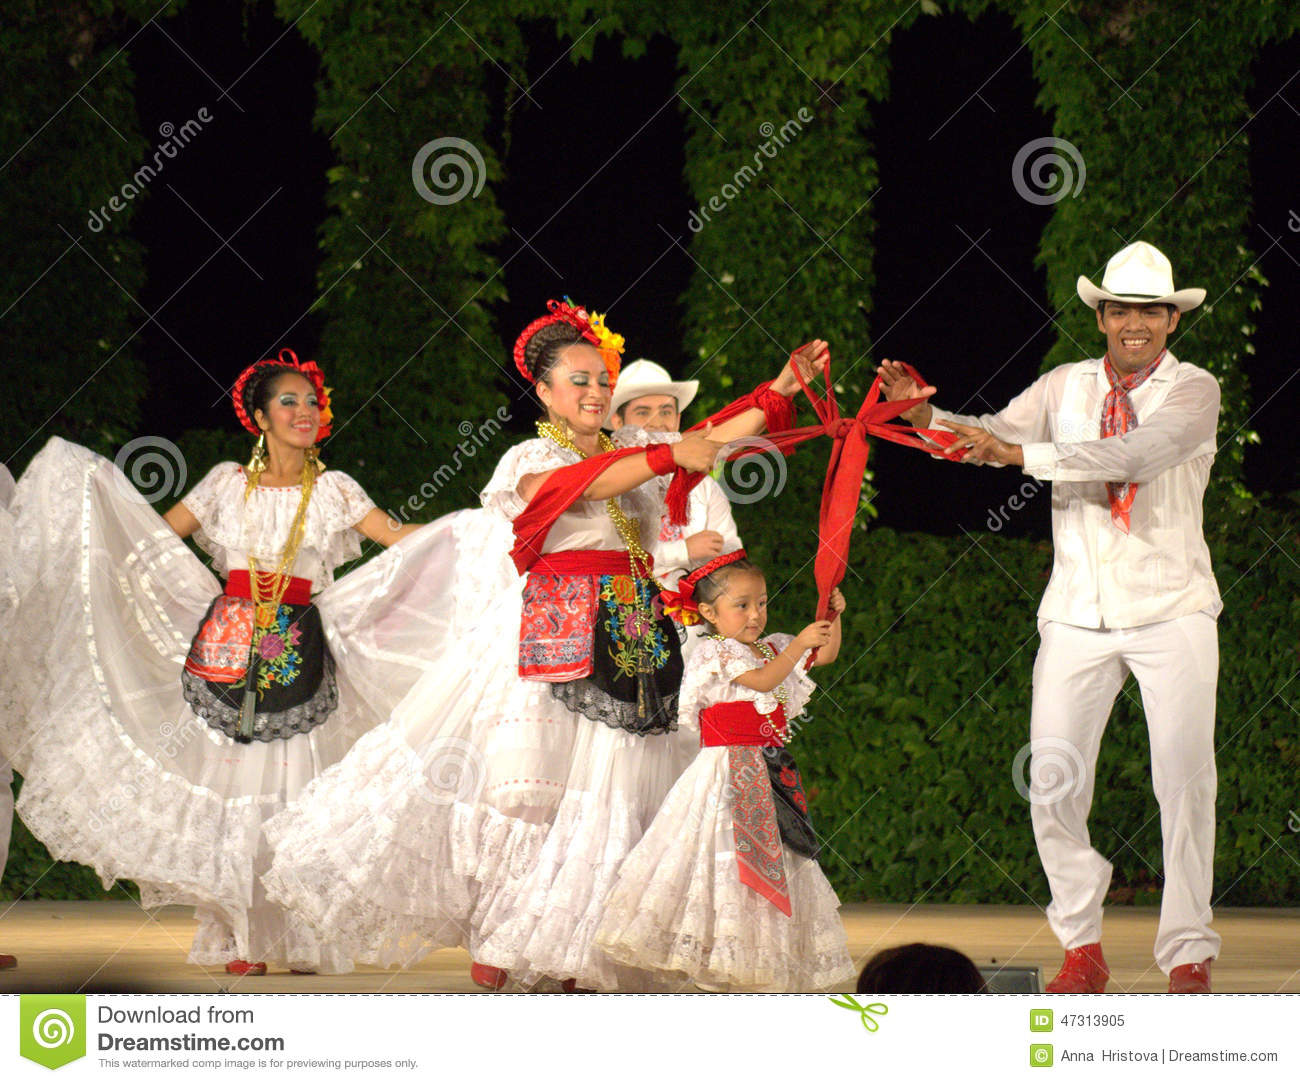 Red Ribbon Bow Family Dance Editorial Image Image of entertainment